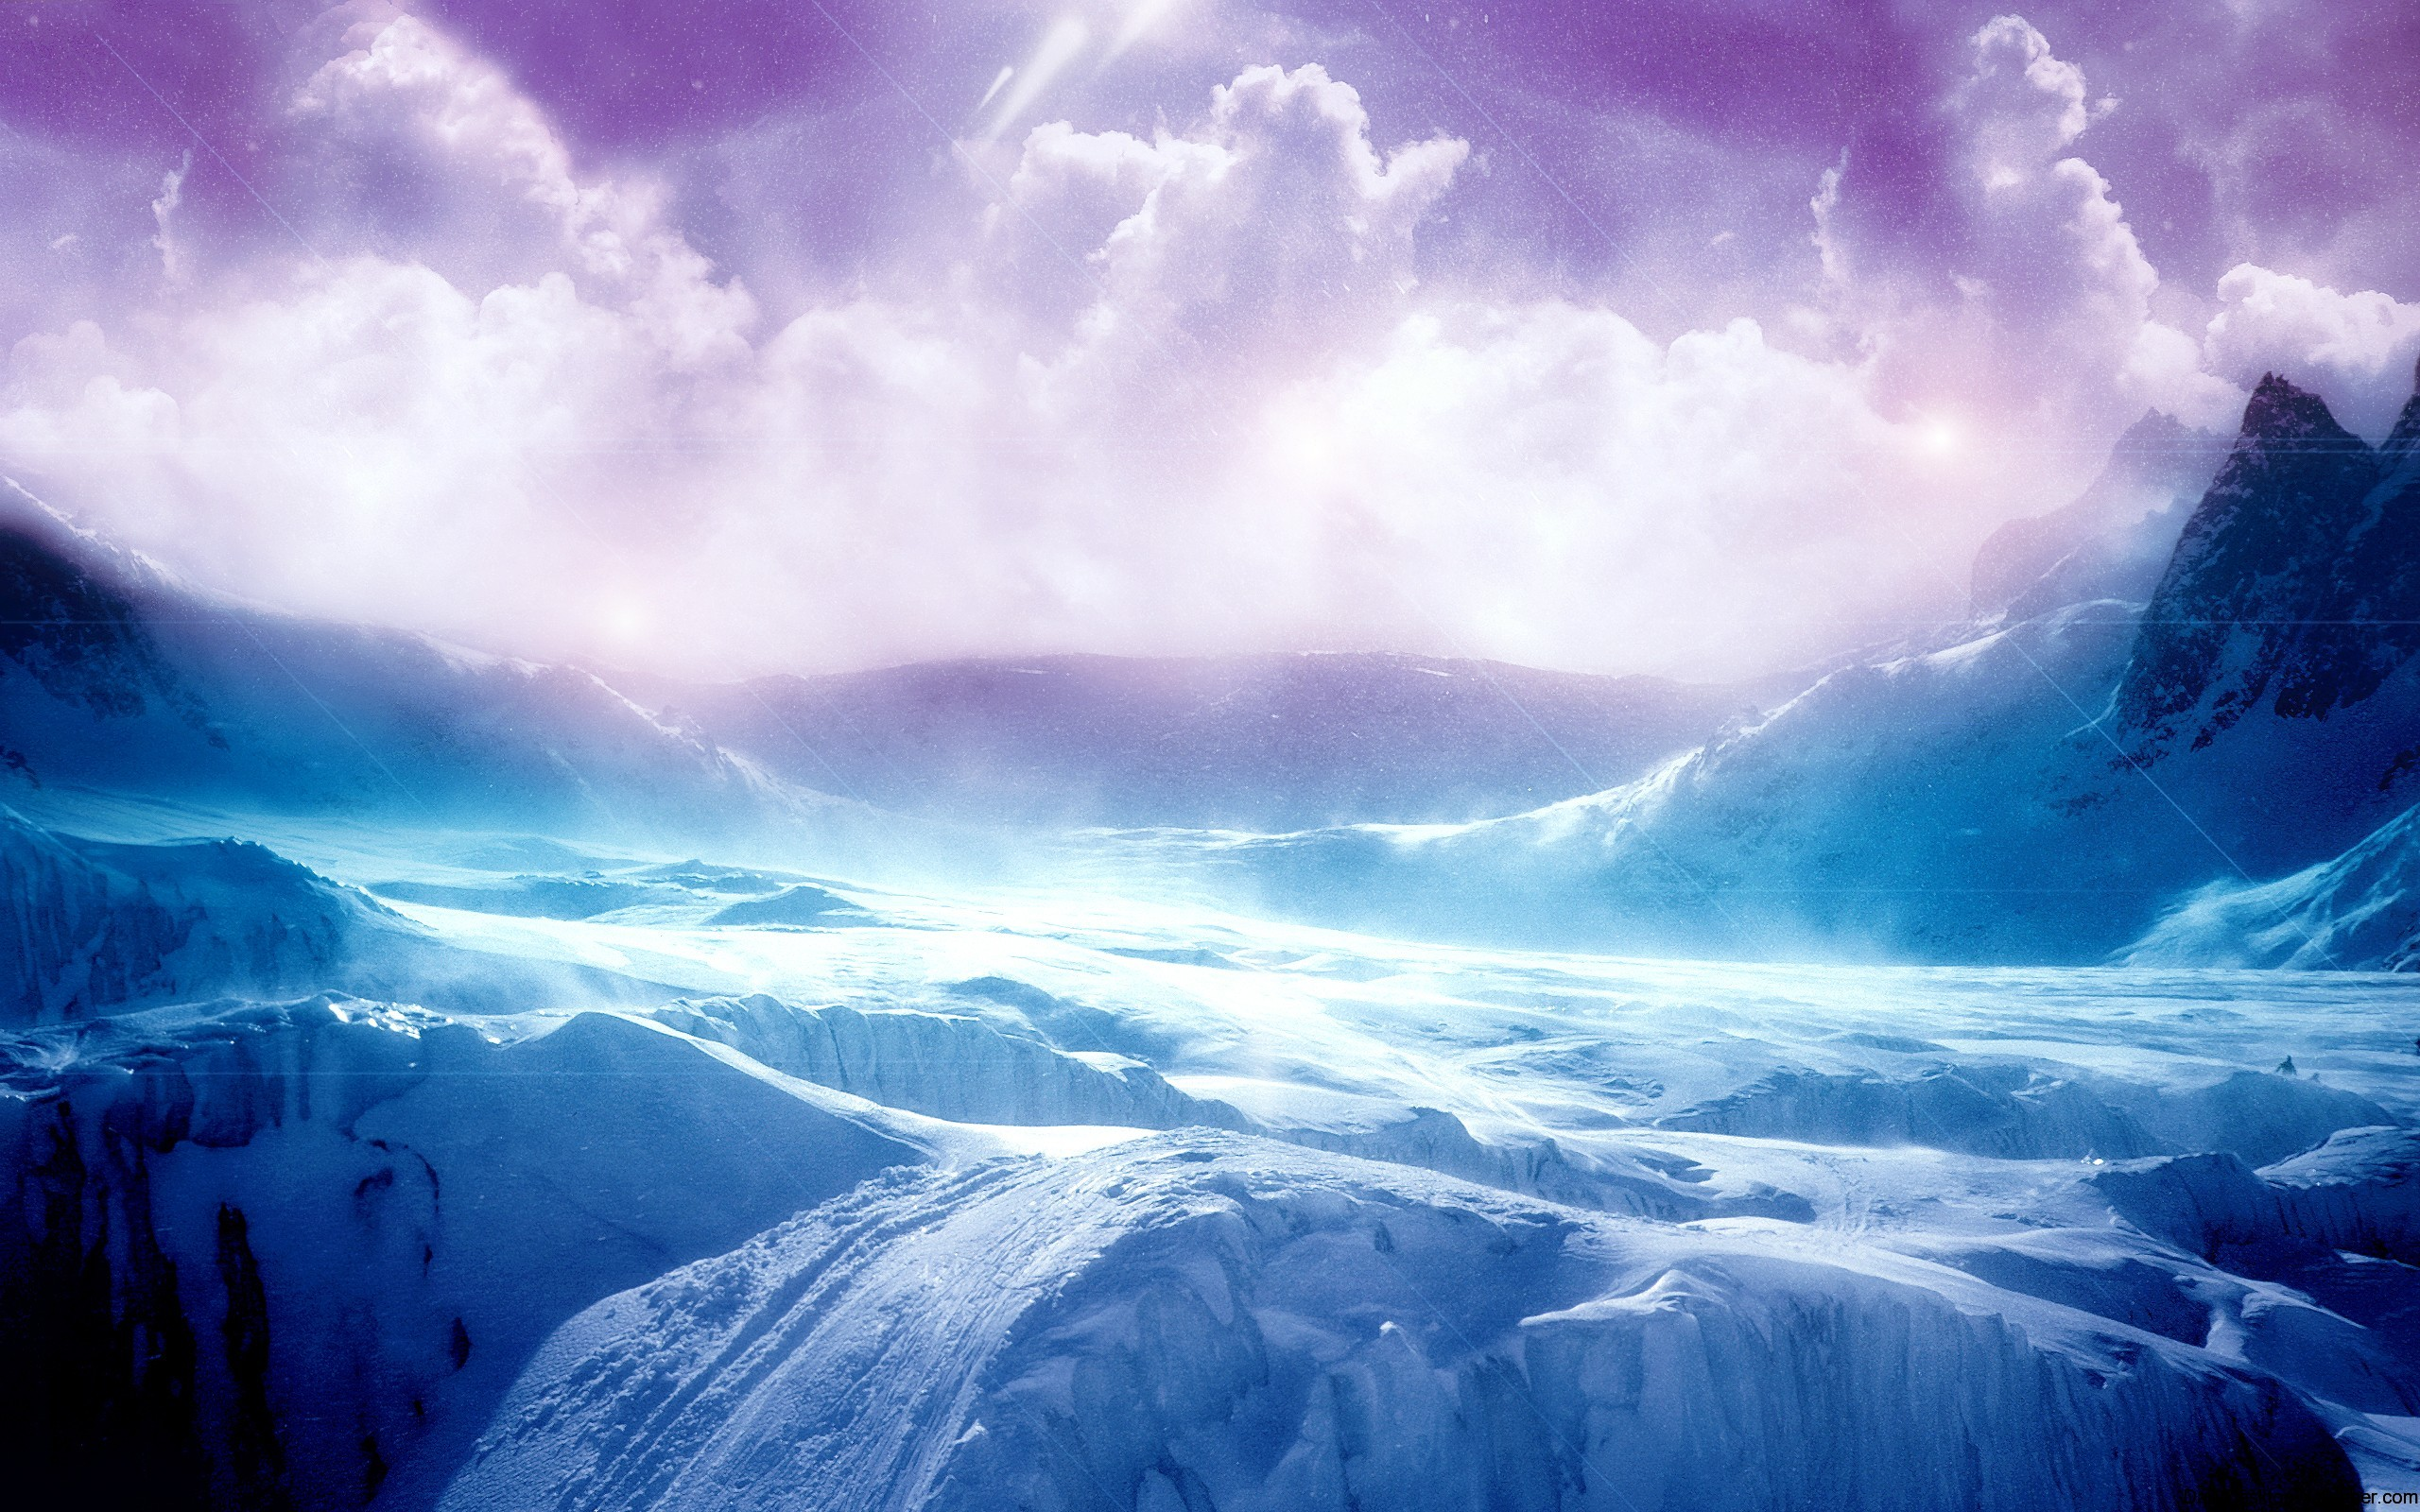 High resolution ice terrain wallpaper